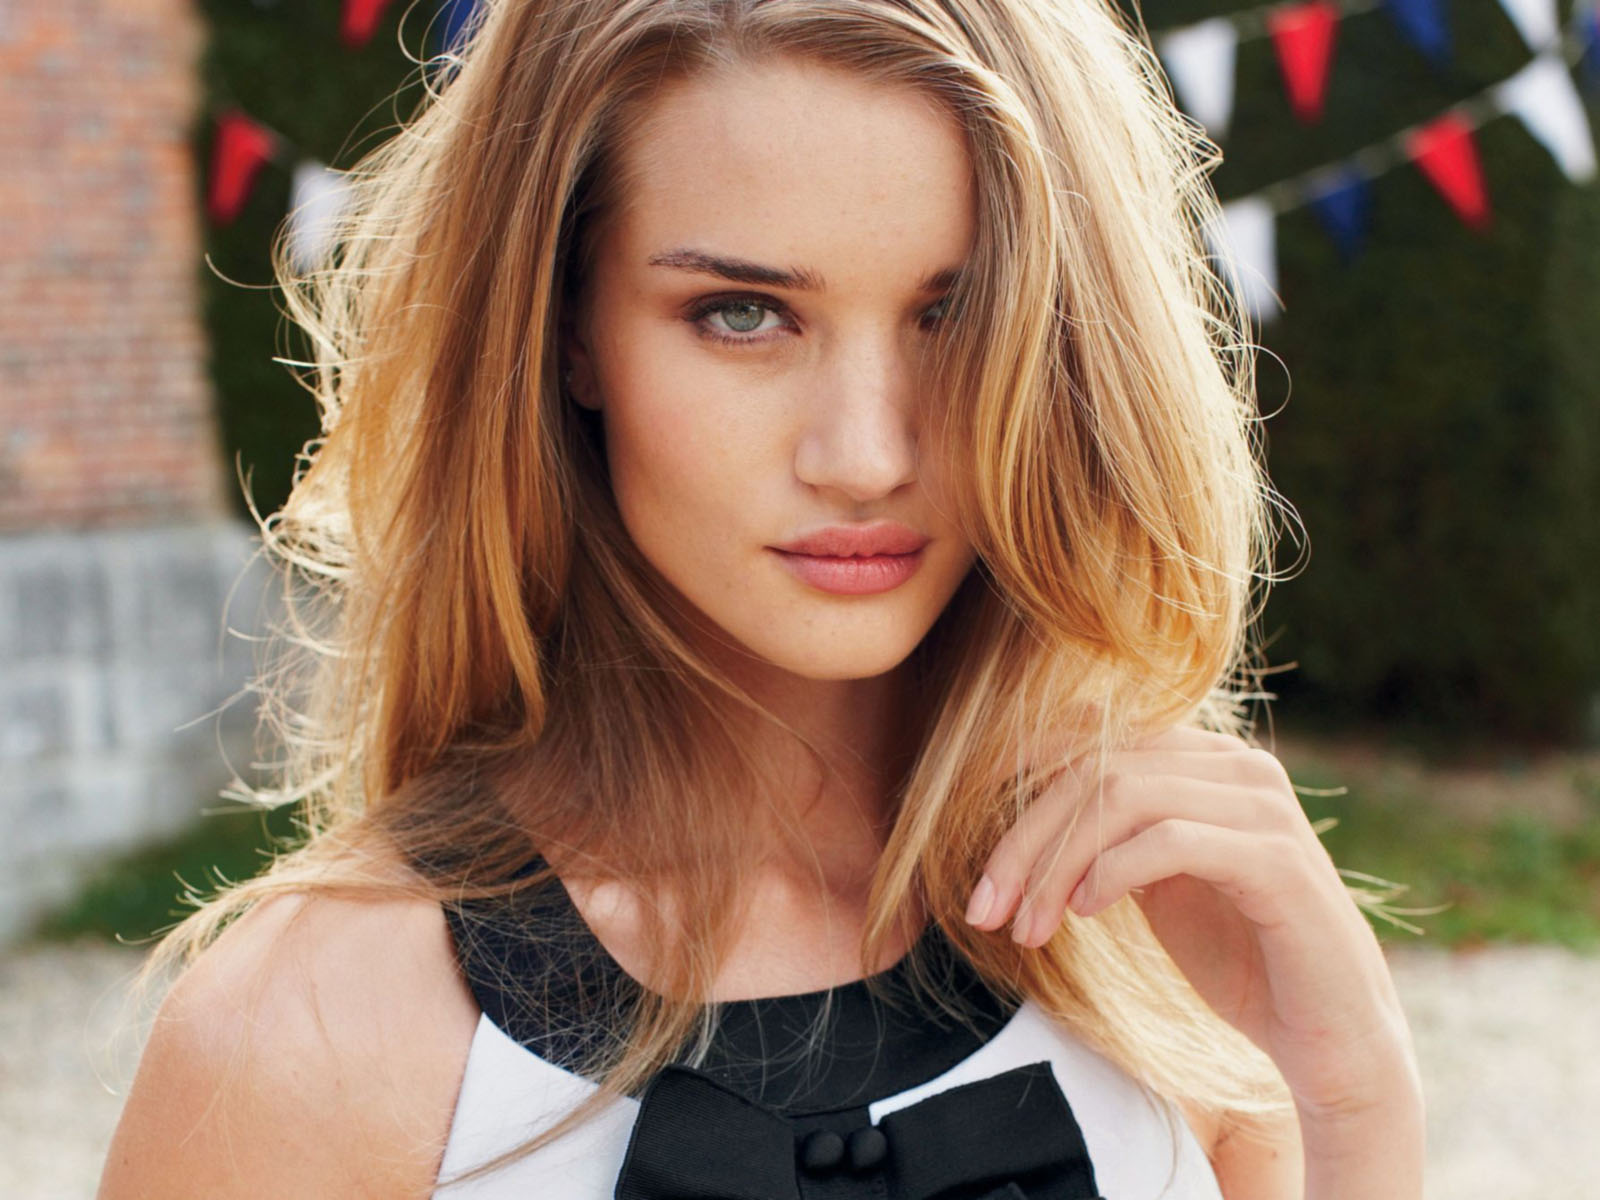 Rosie Huntington Whiteley Cool Wallpapers Download Hd